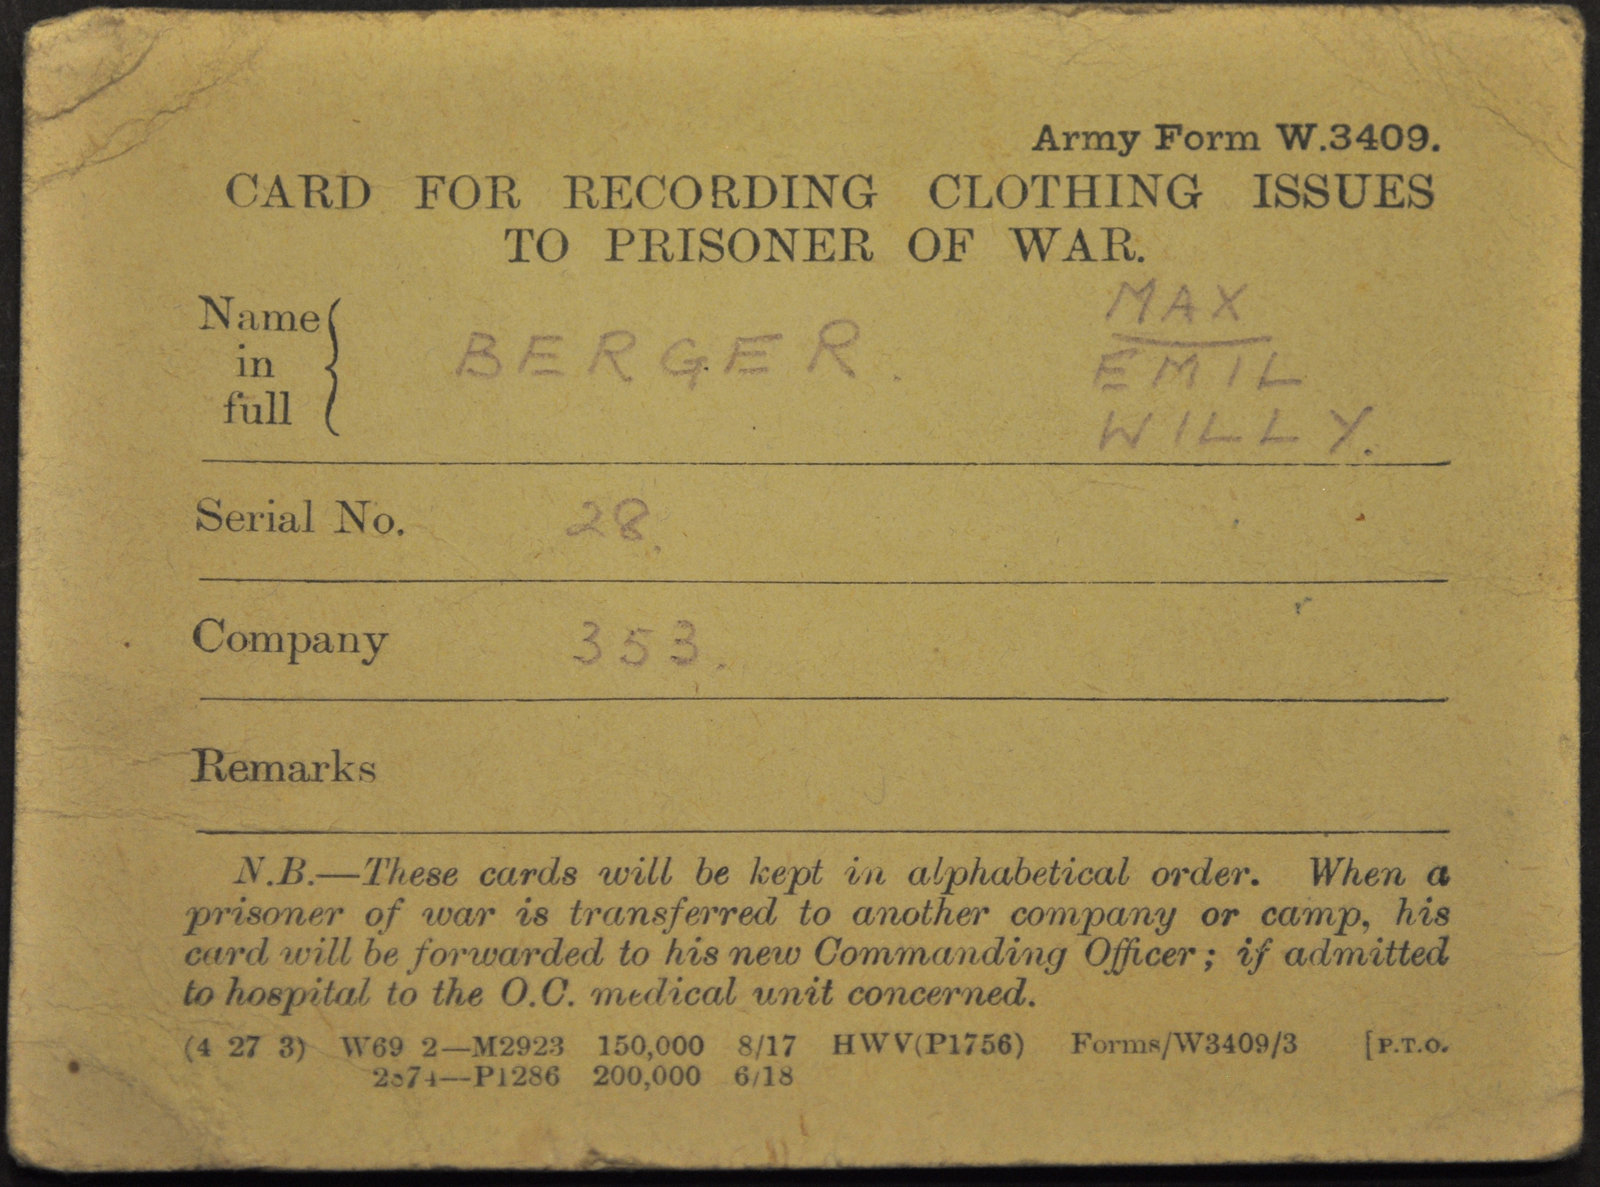 Card for recording clothing issues to Prisoner of War, 1918, Europeana 1914- 1918 / Helga Berger, CC BY-SA